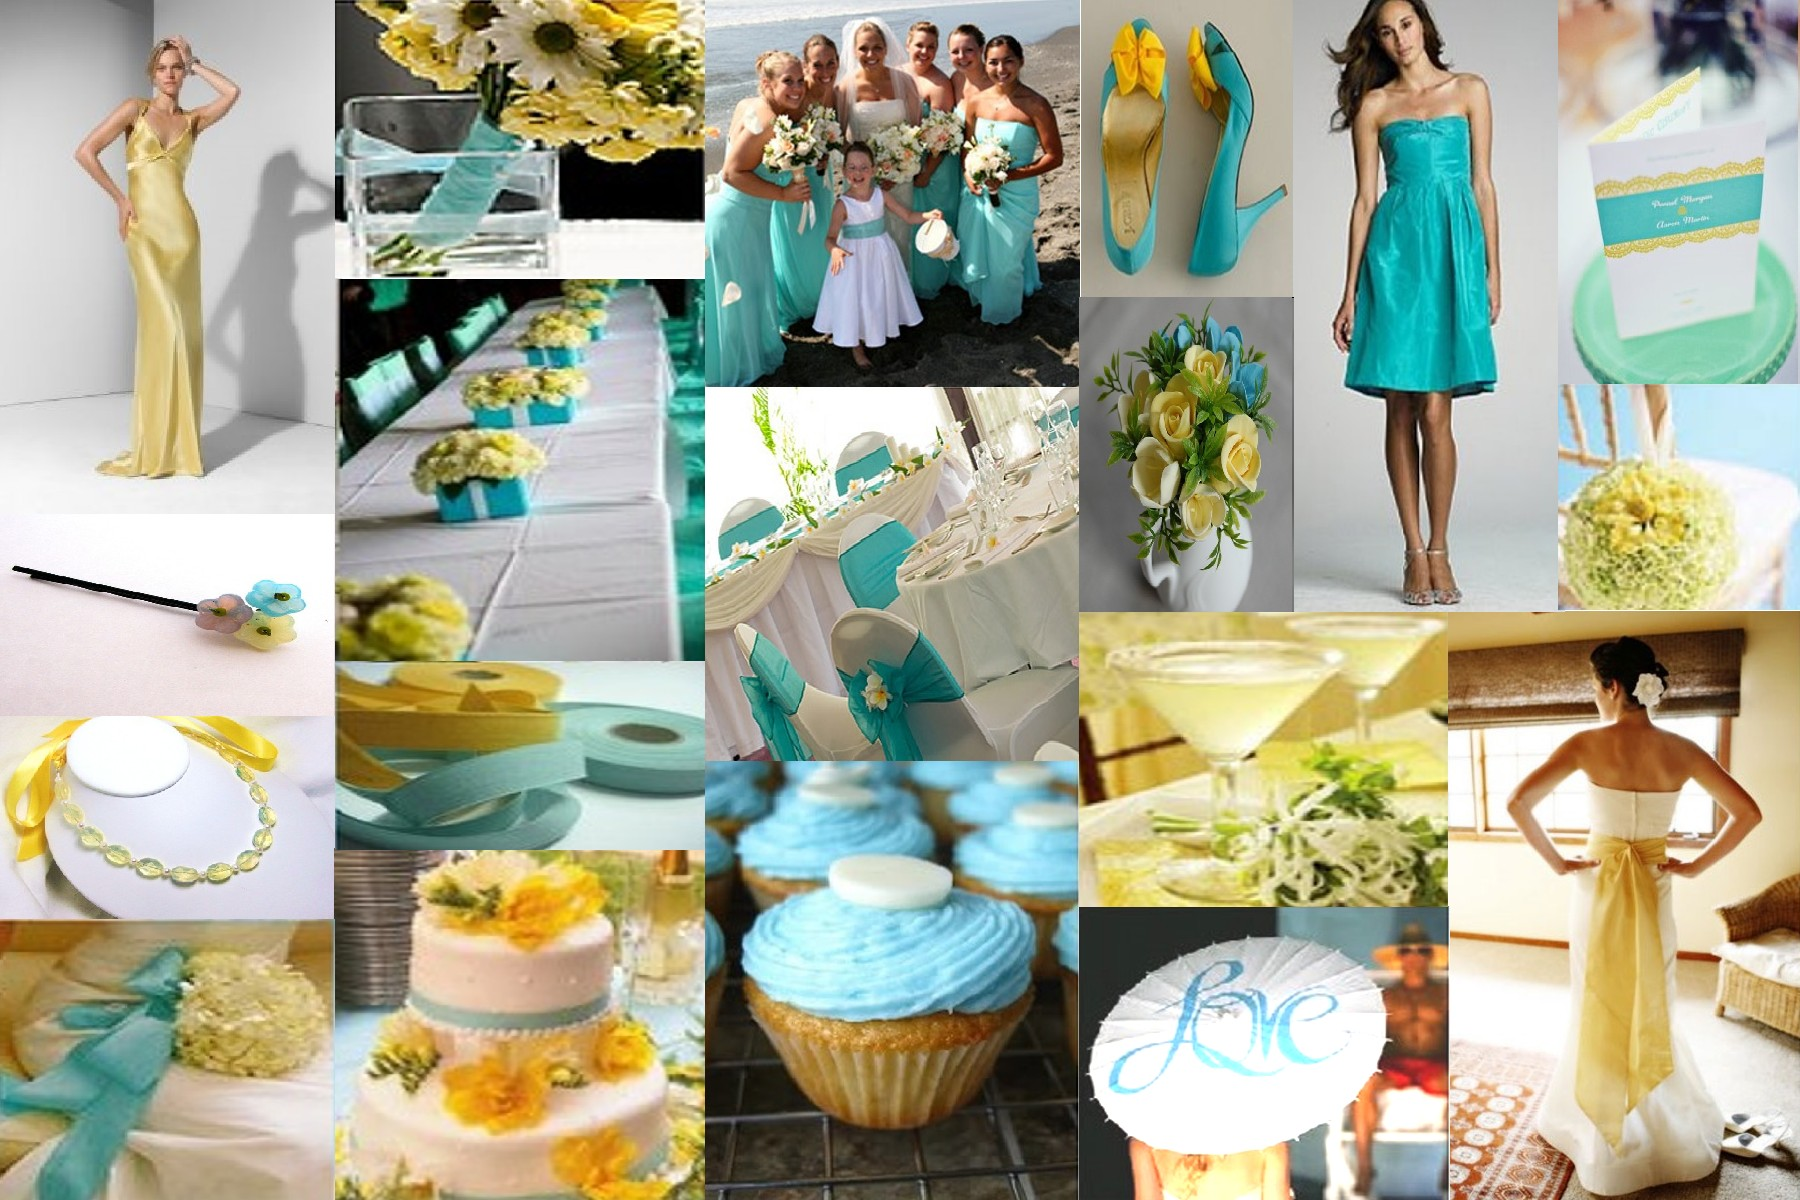 What Colours Go With Aqua And Teal?